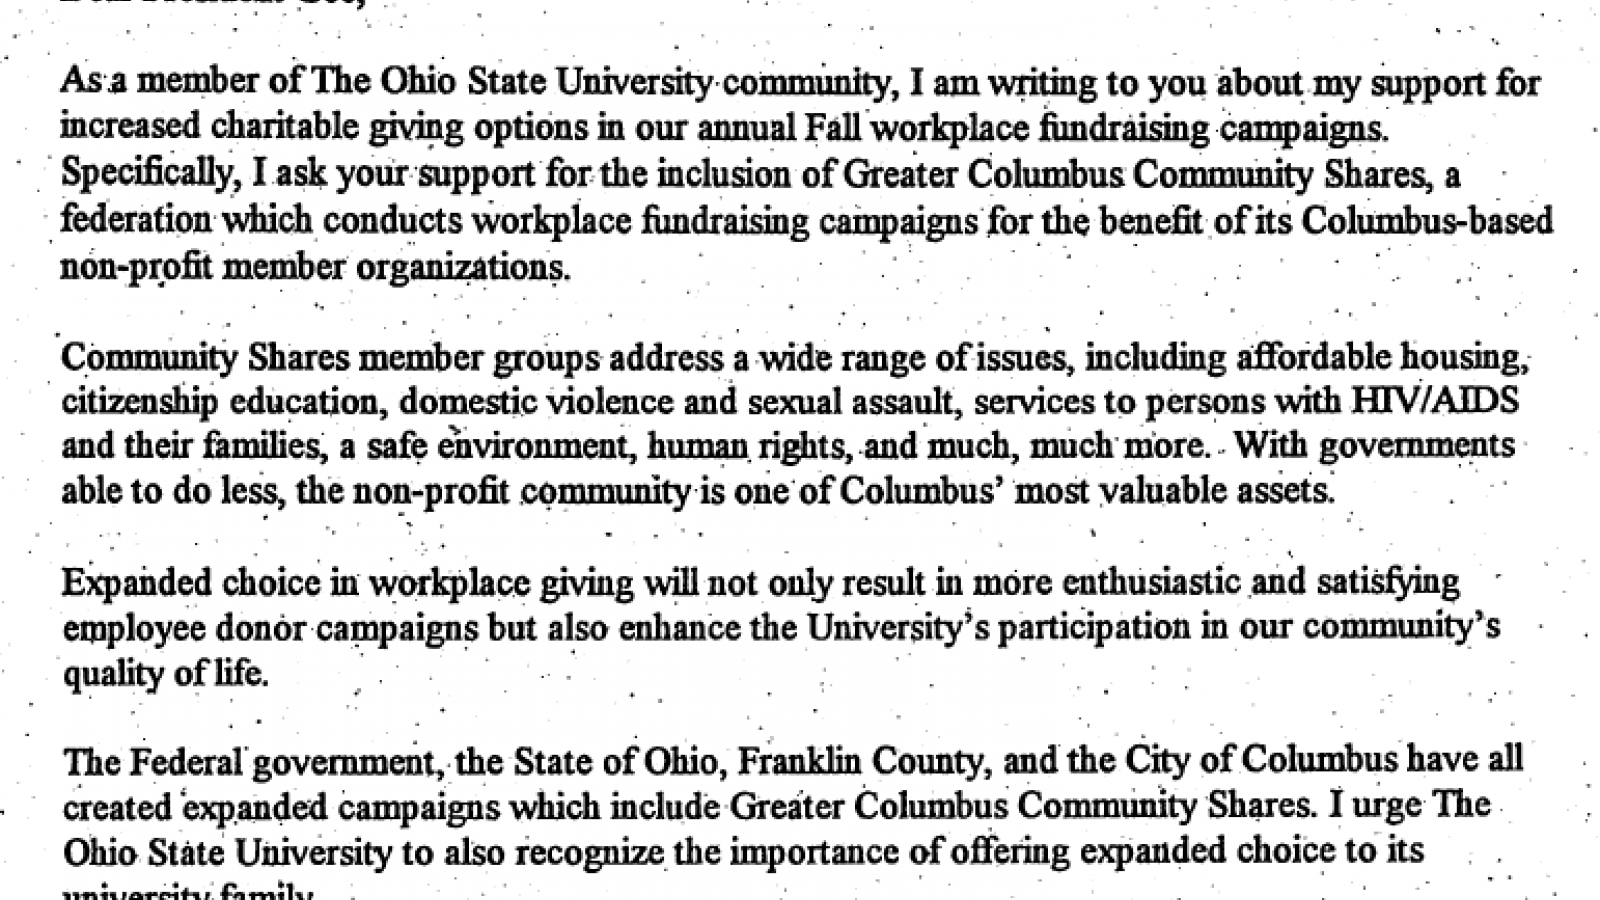 Letter to OSU President Gee on GCCS